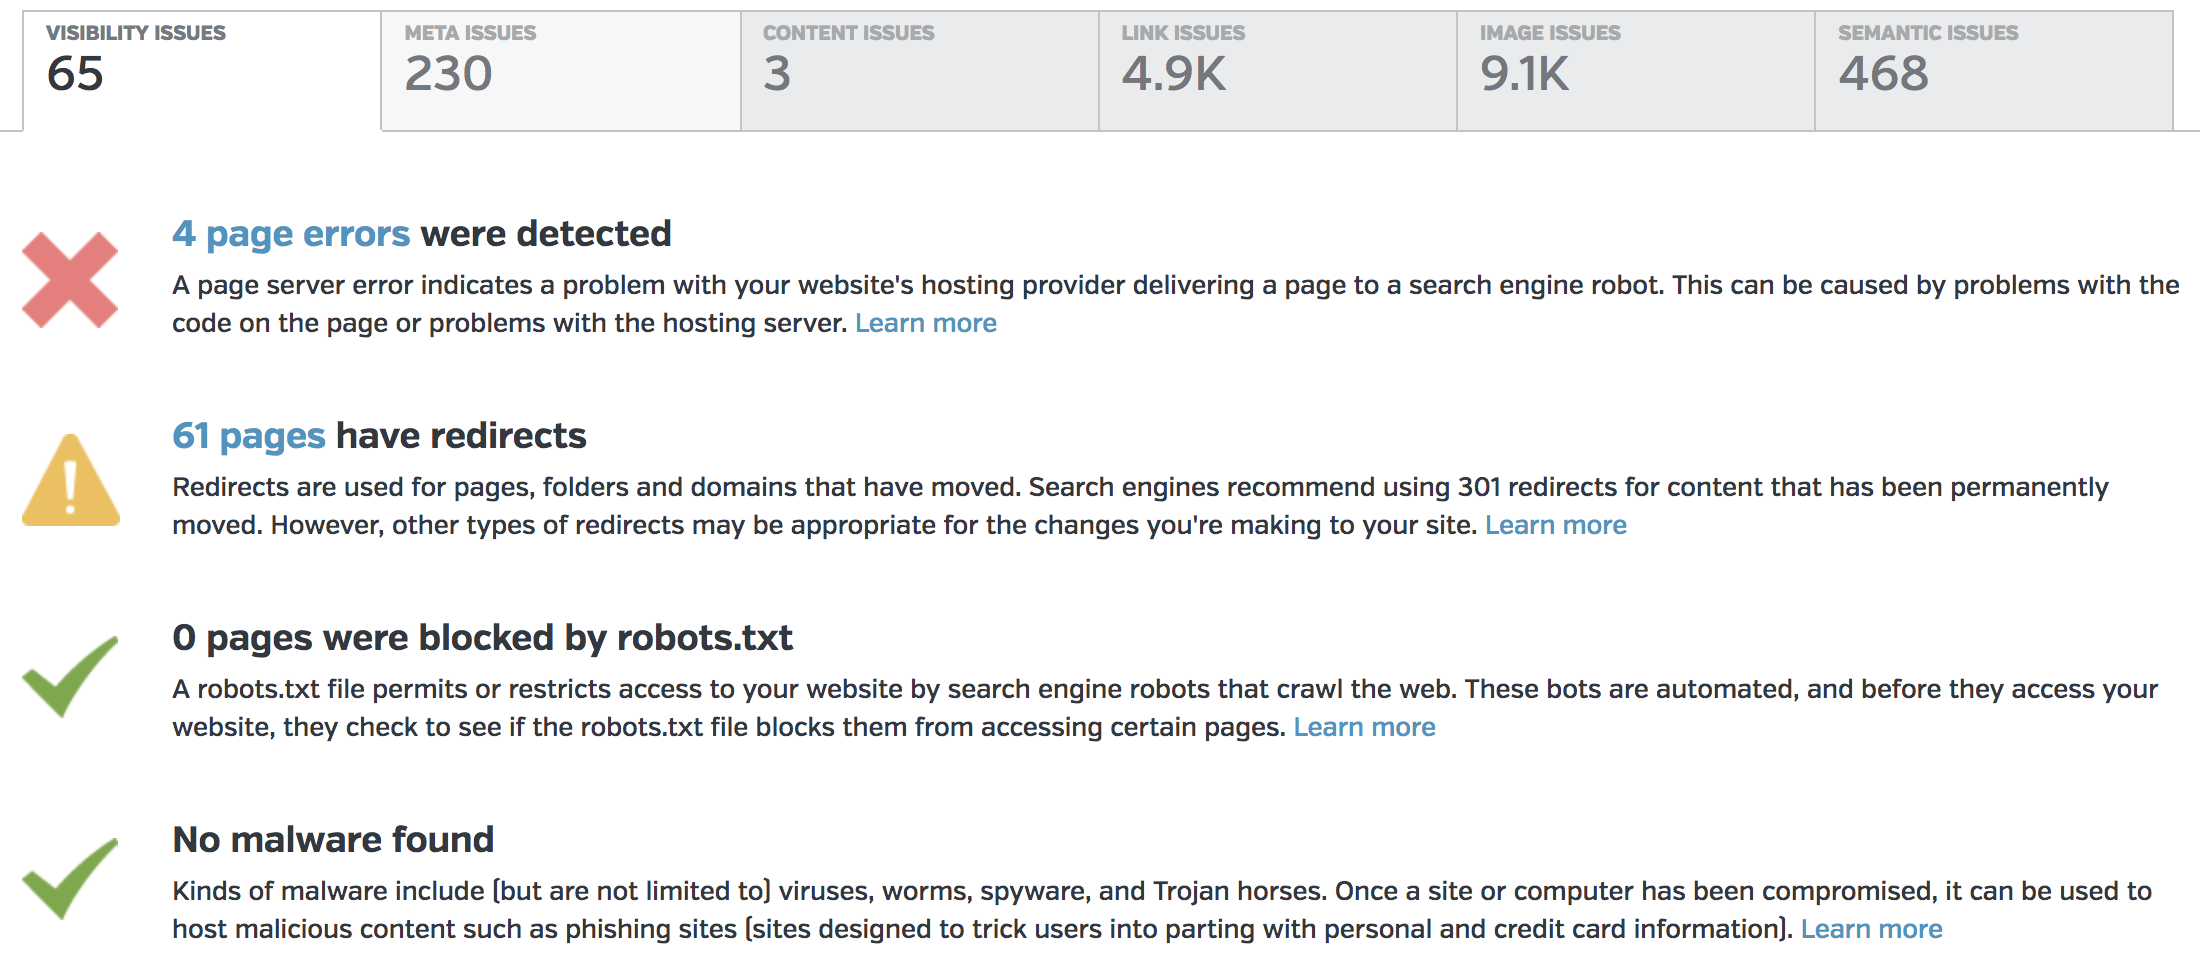 Site Auditor for Onpage Technical SEO Audits